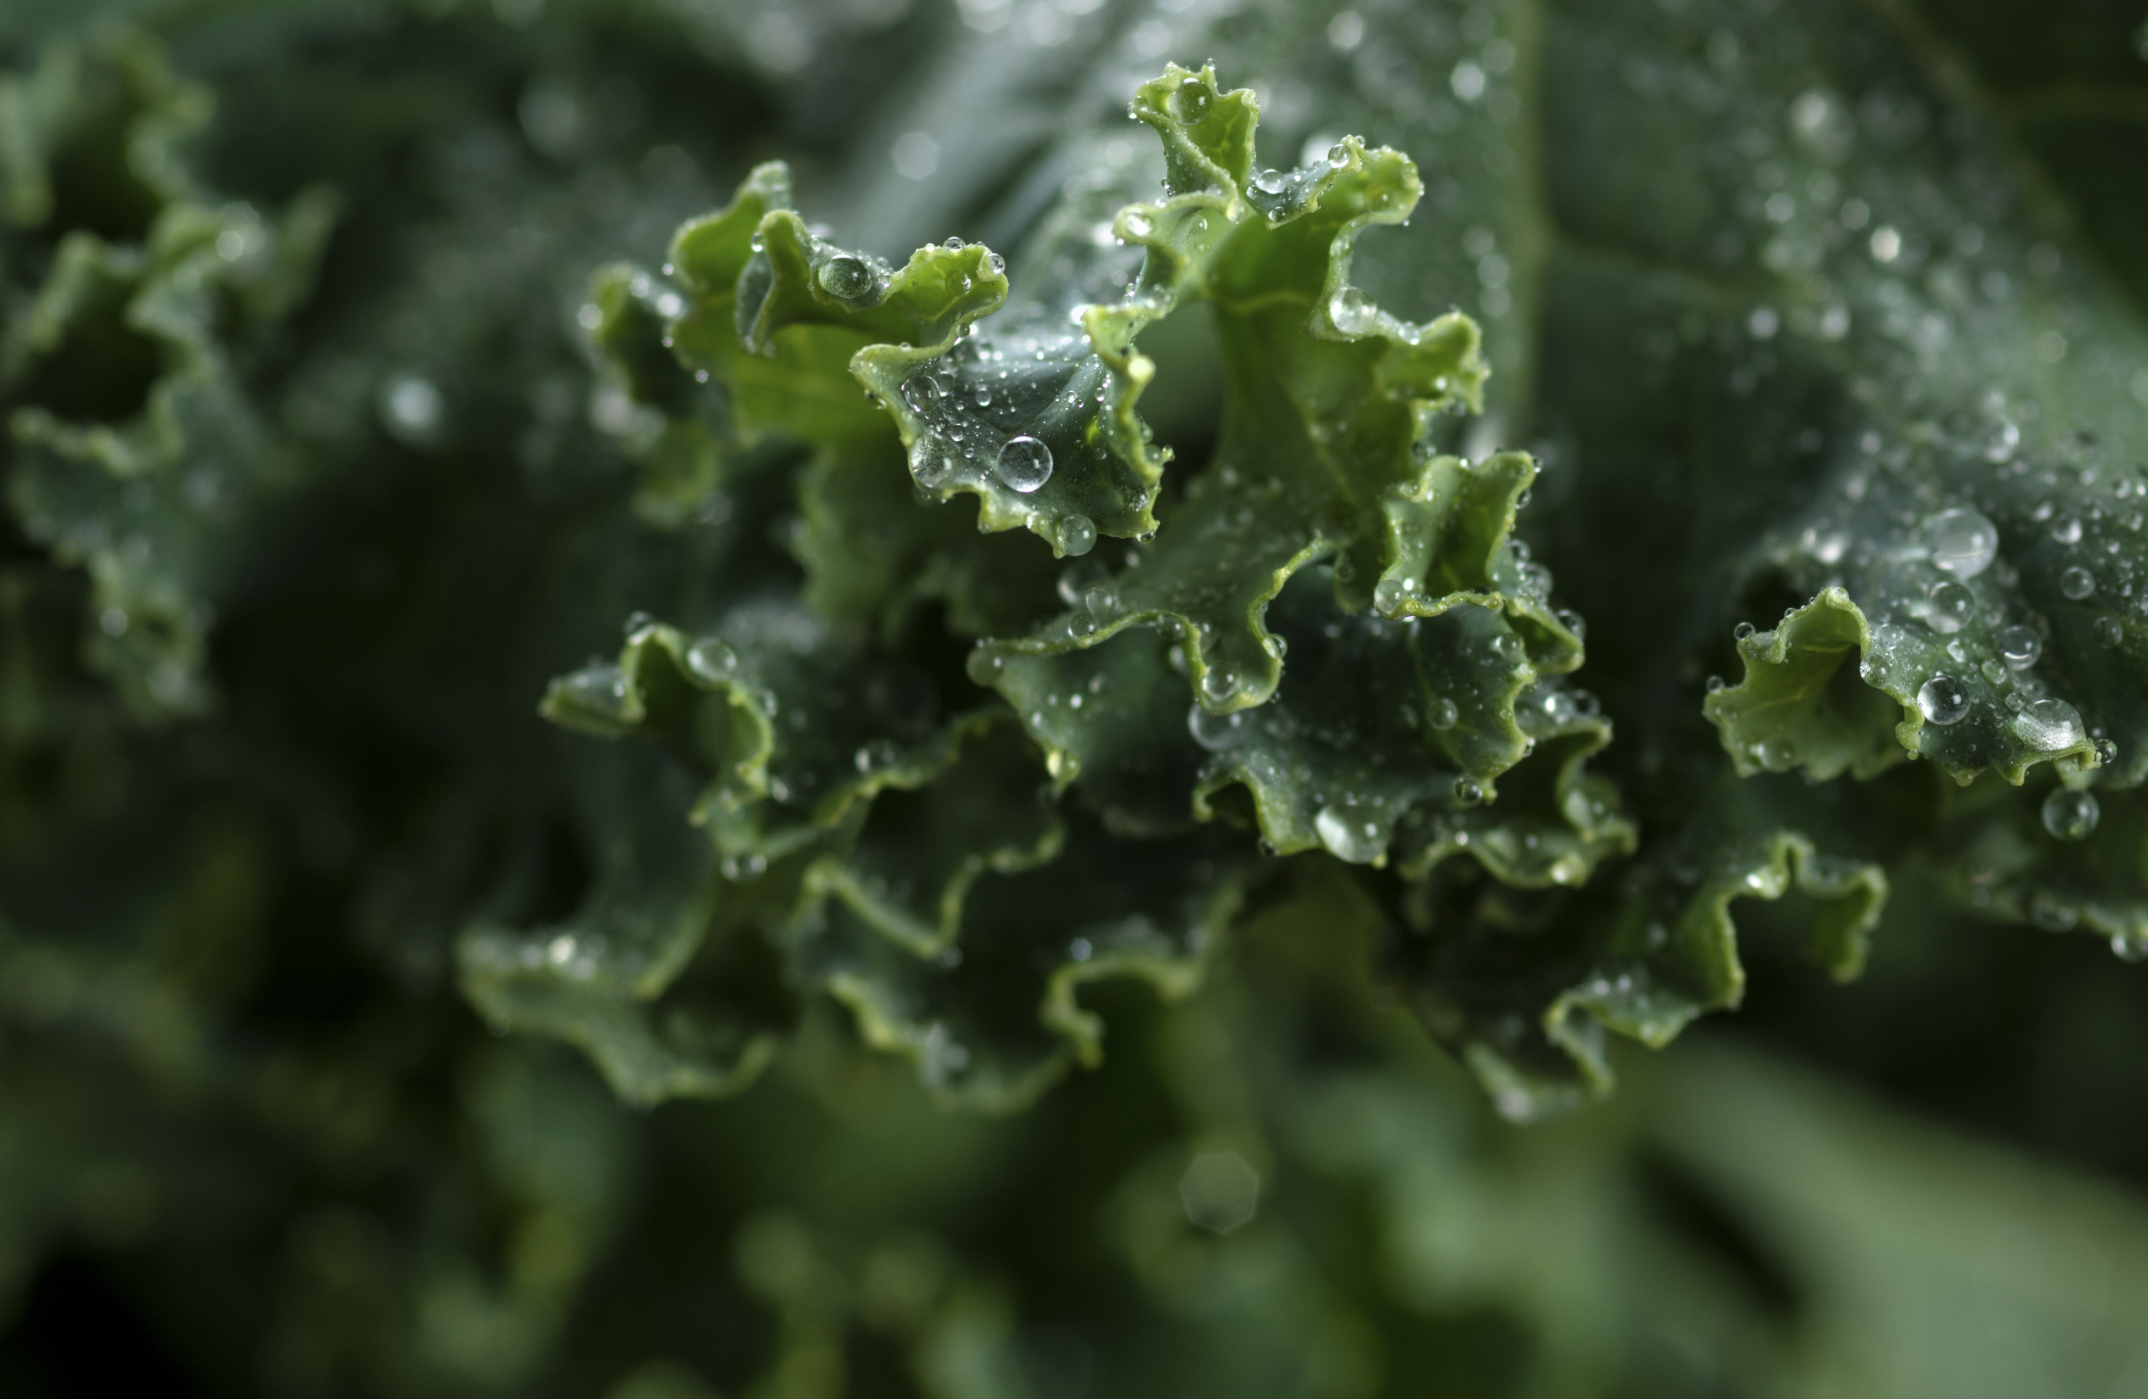 How much kale should i eat per week